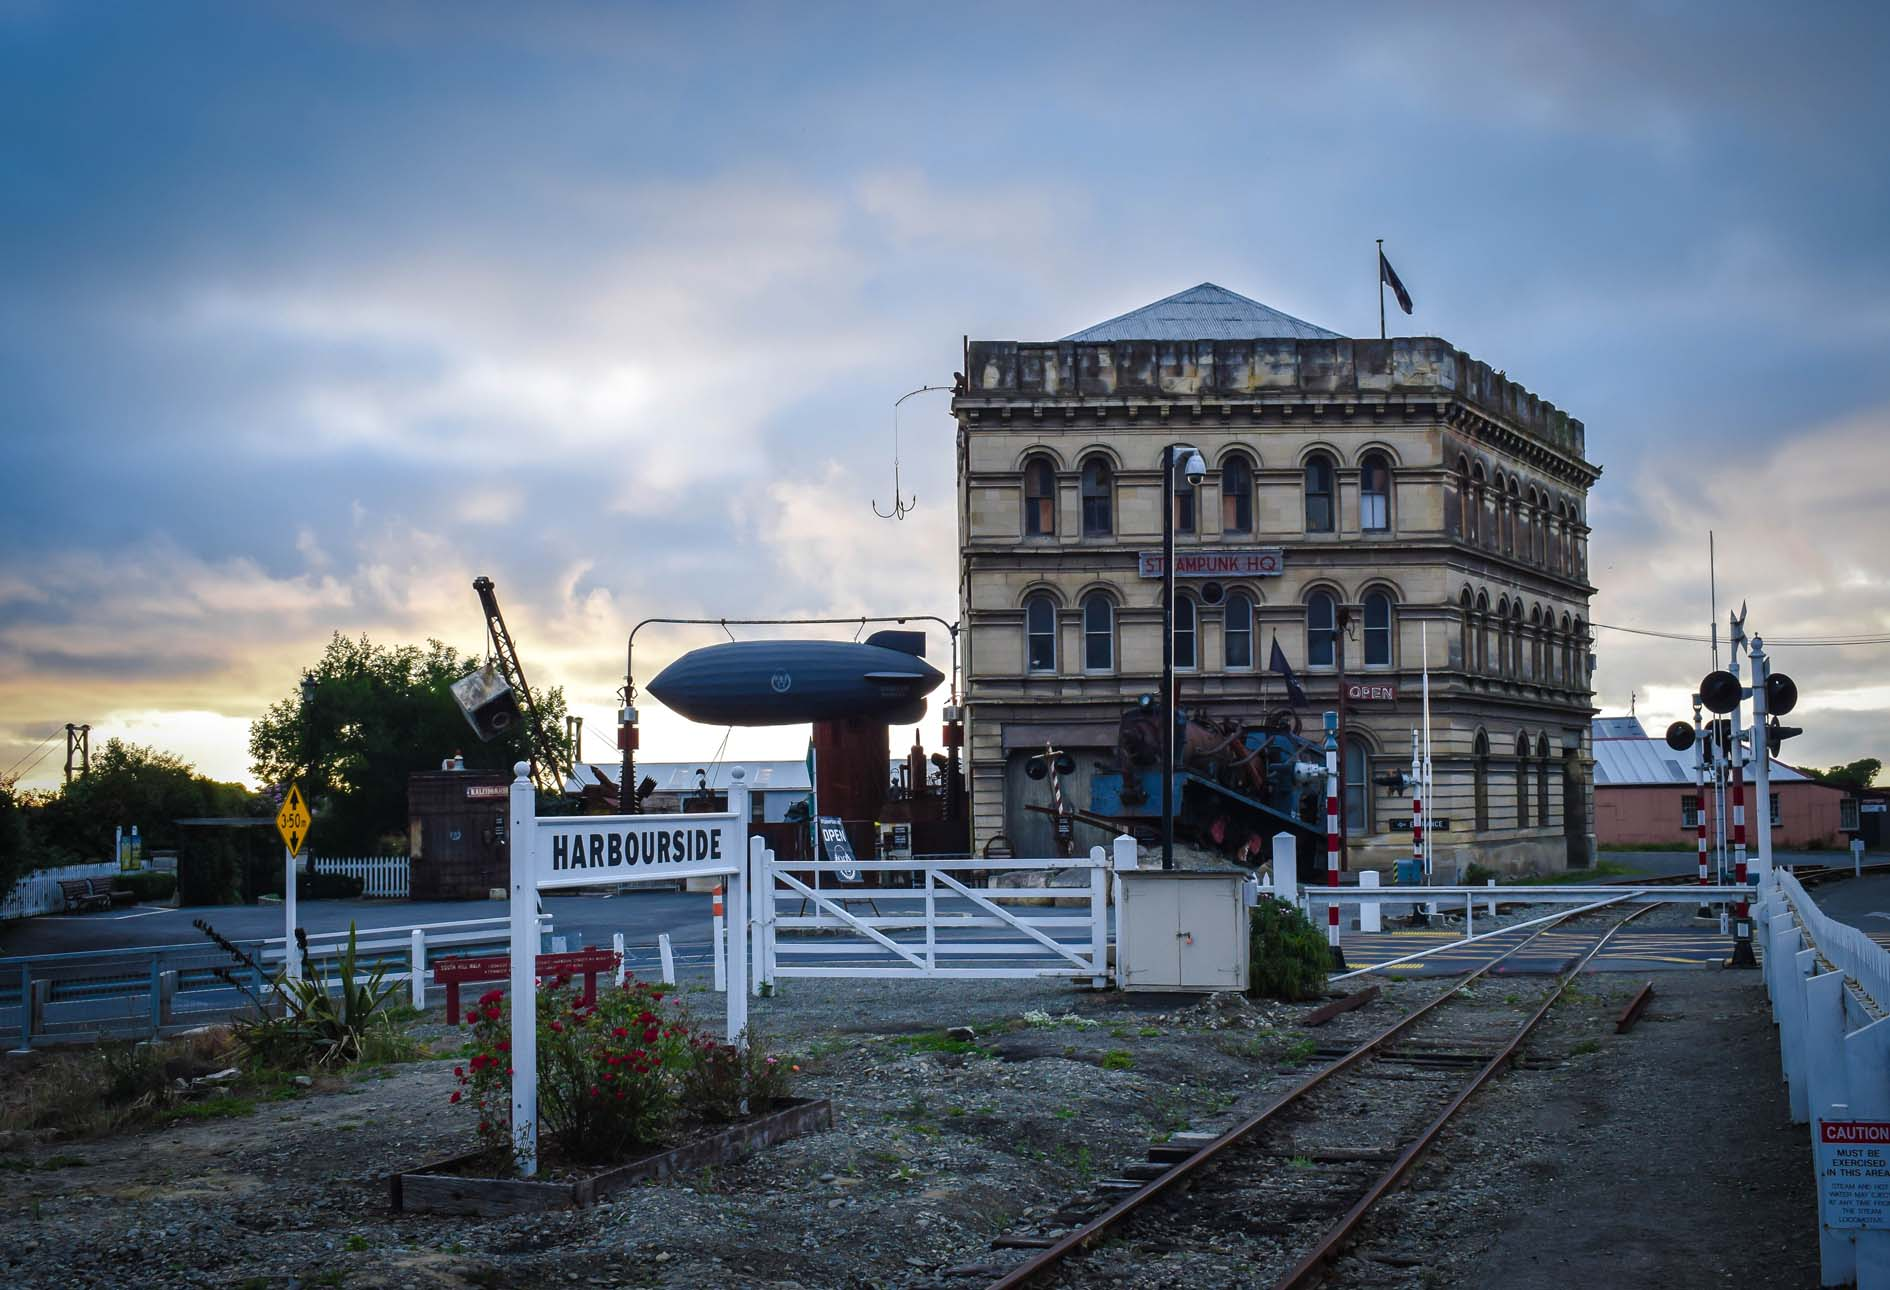 Oamaru has its own iconic rail-related museum in the form of Steampunk HQ in an 1883 Grain Elevator building